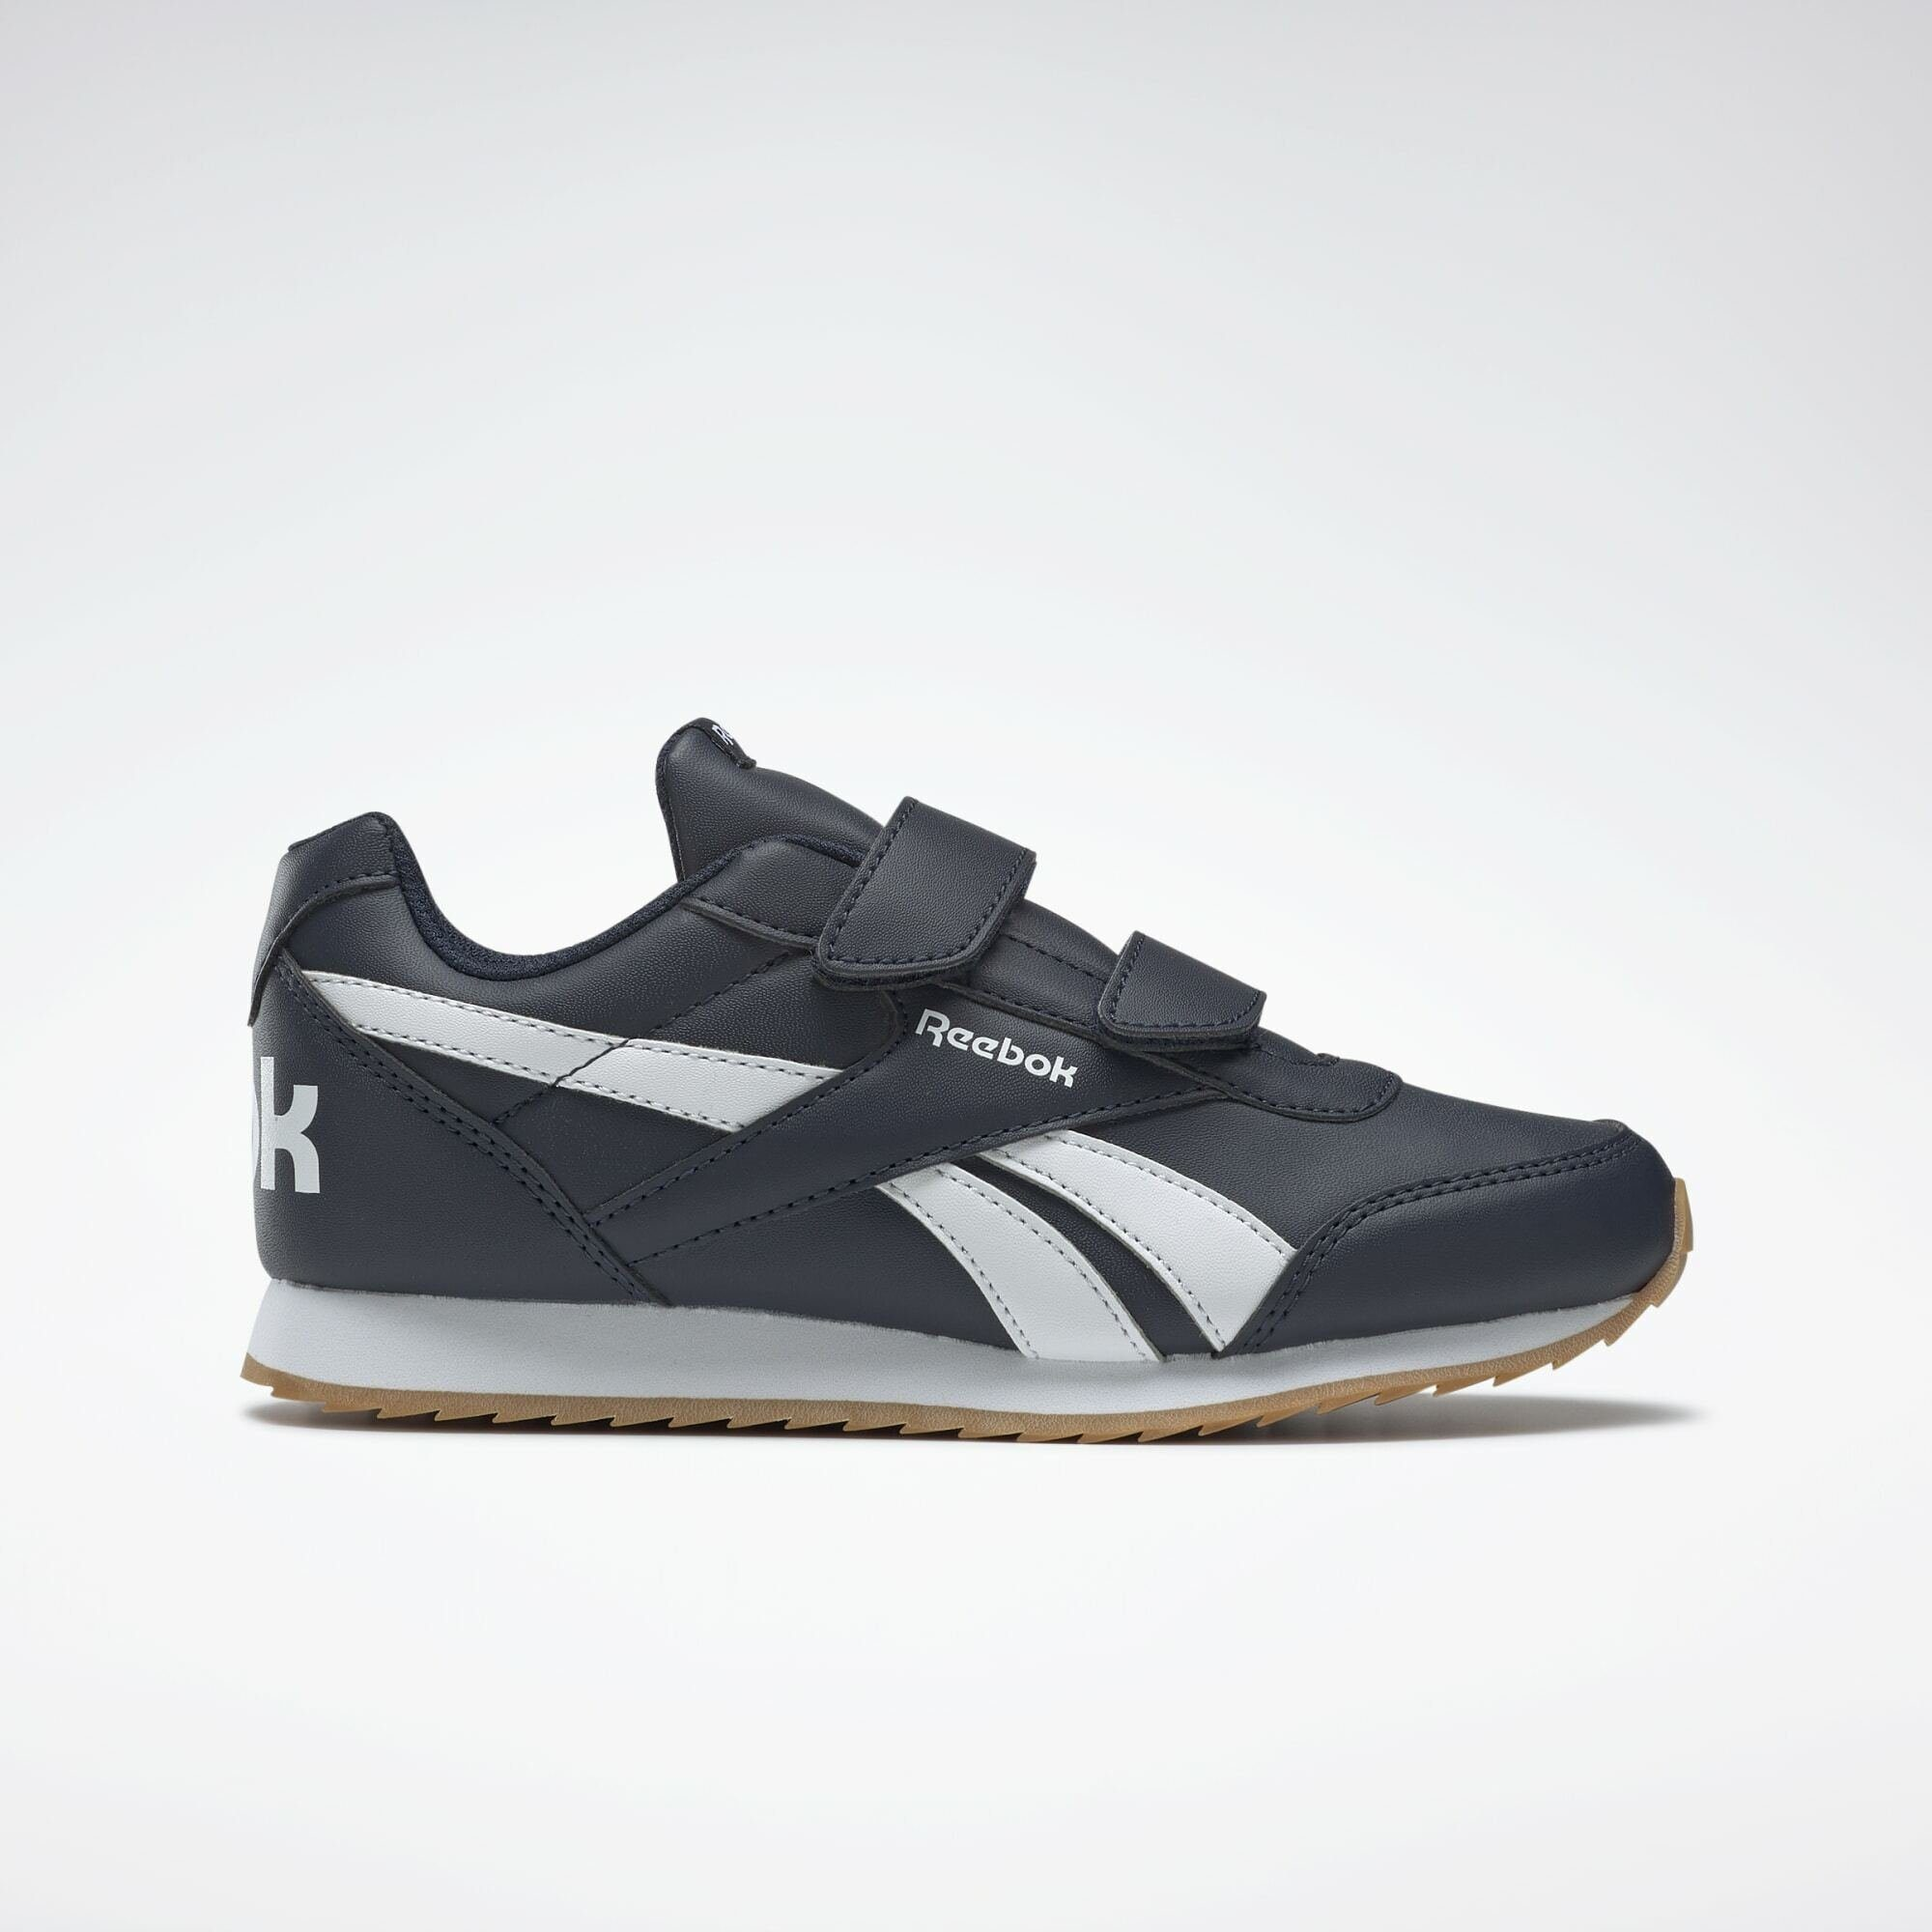 Reebok Classic »Reebok Royal Classic Jogger 2.0 Shoes« Sneaker online kaufen | OTTO